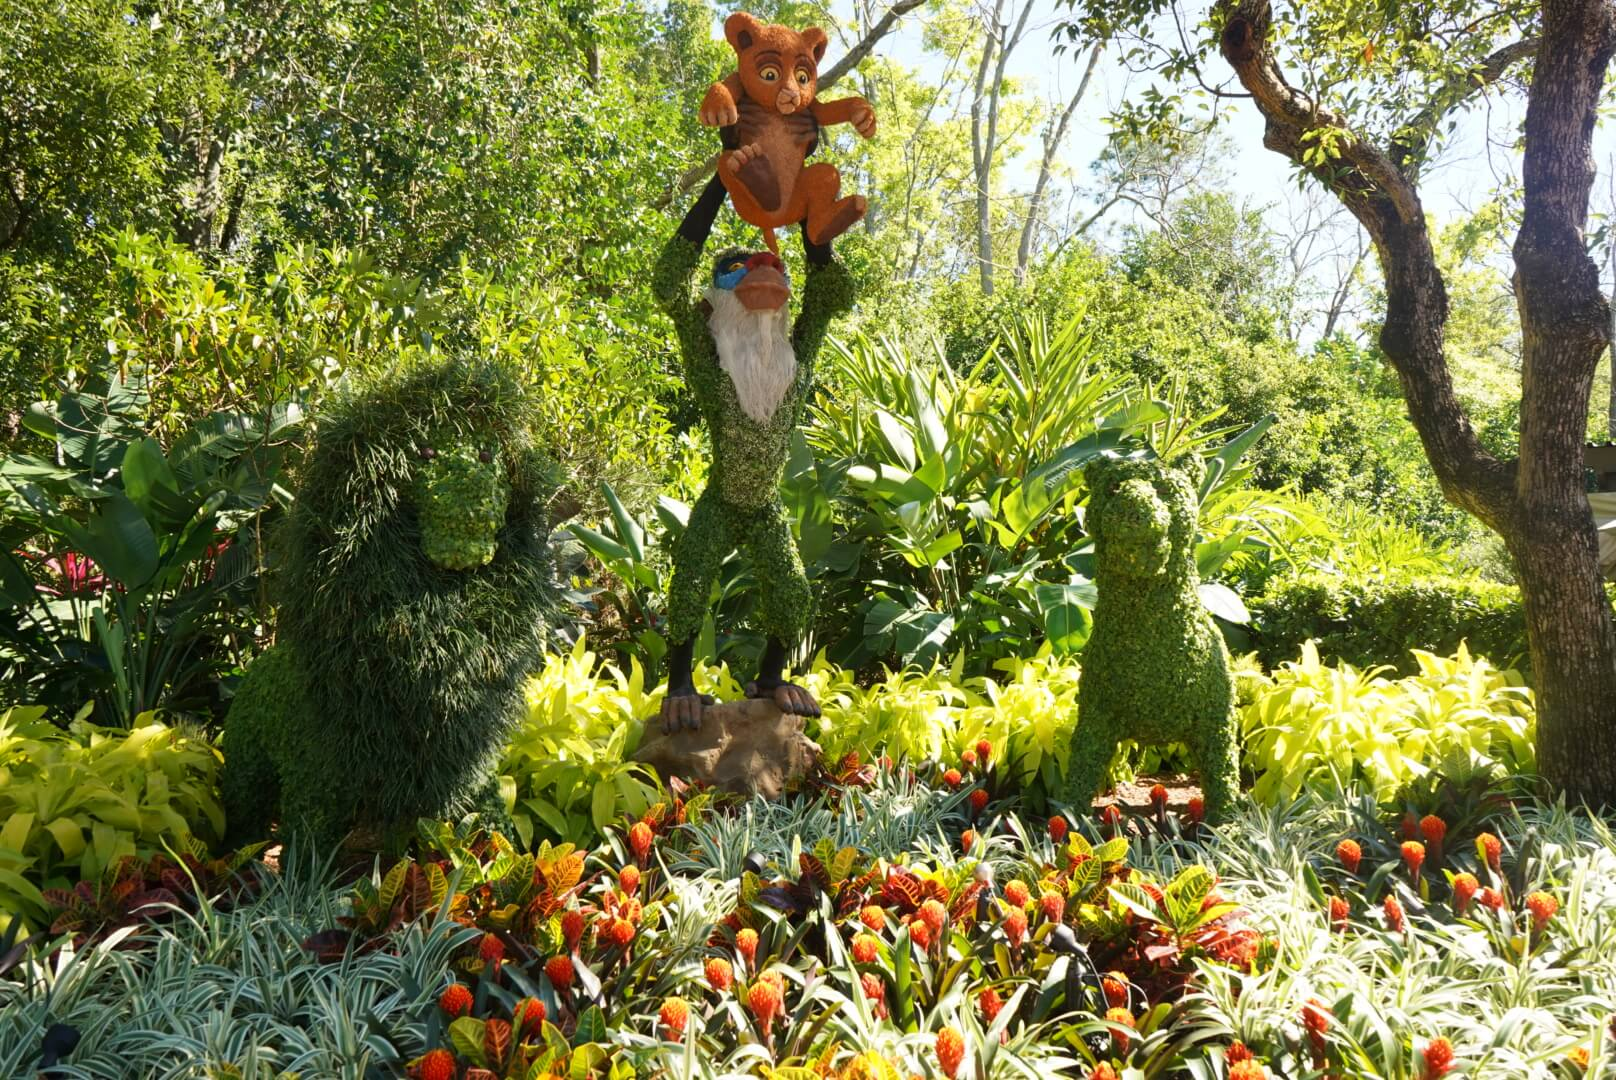 The Lion King topiaries at Epcot Flower and Garden Festival 2019